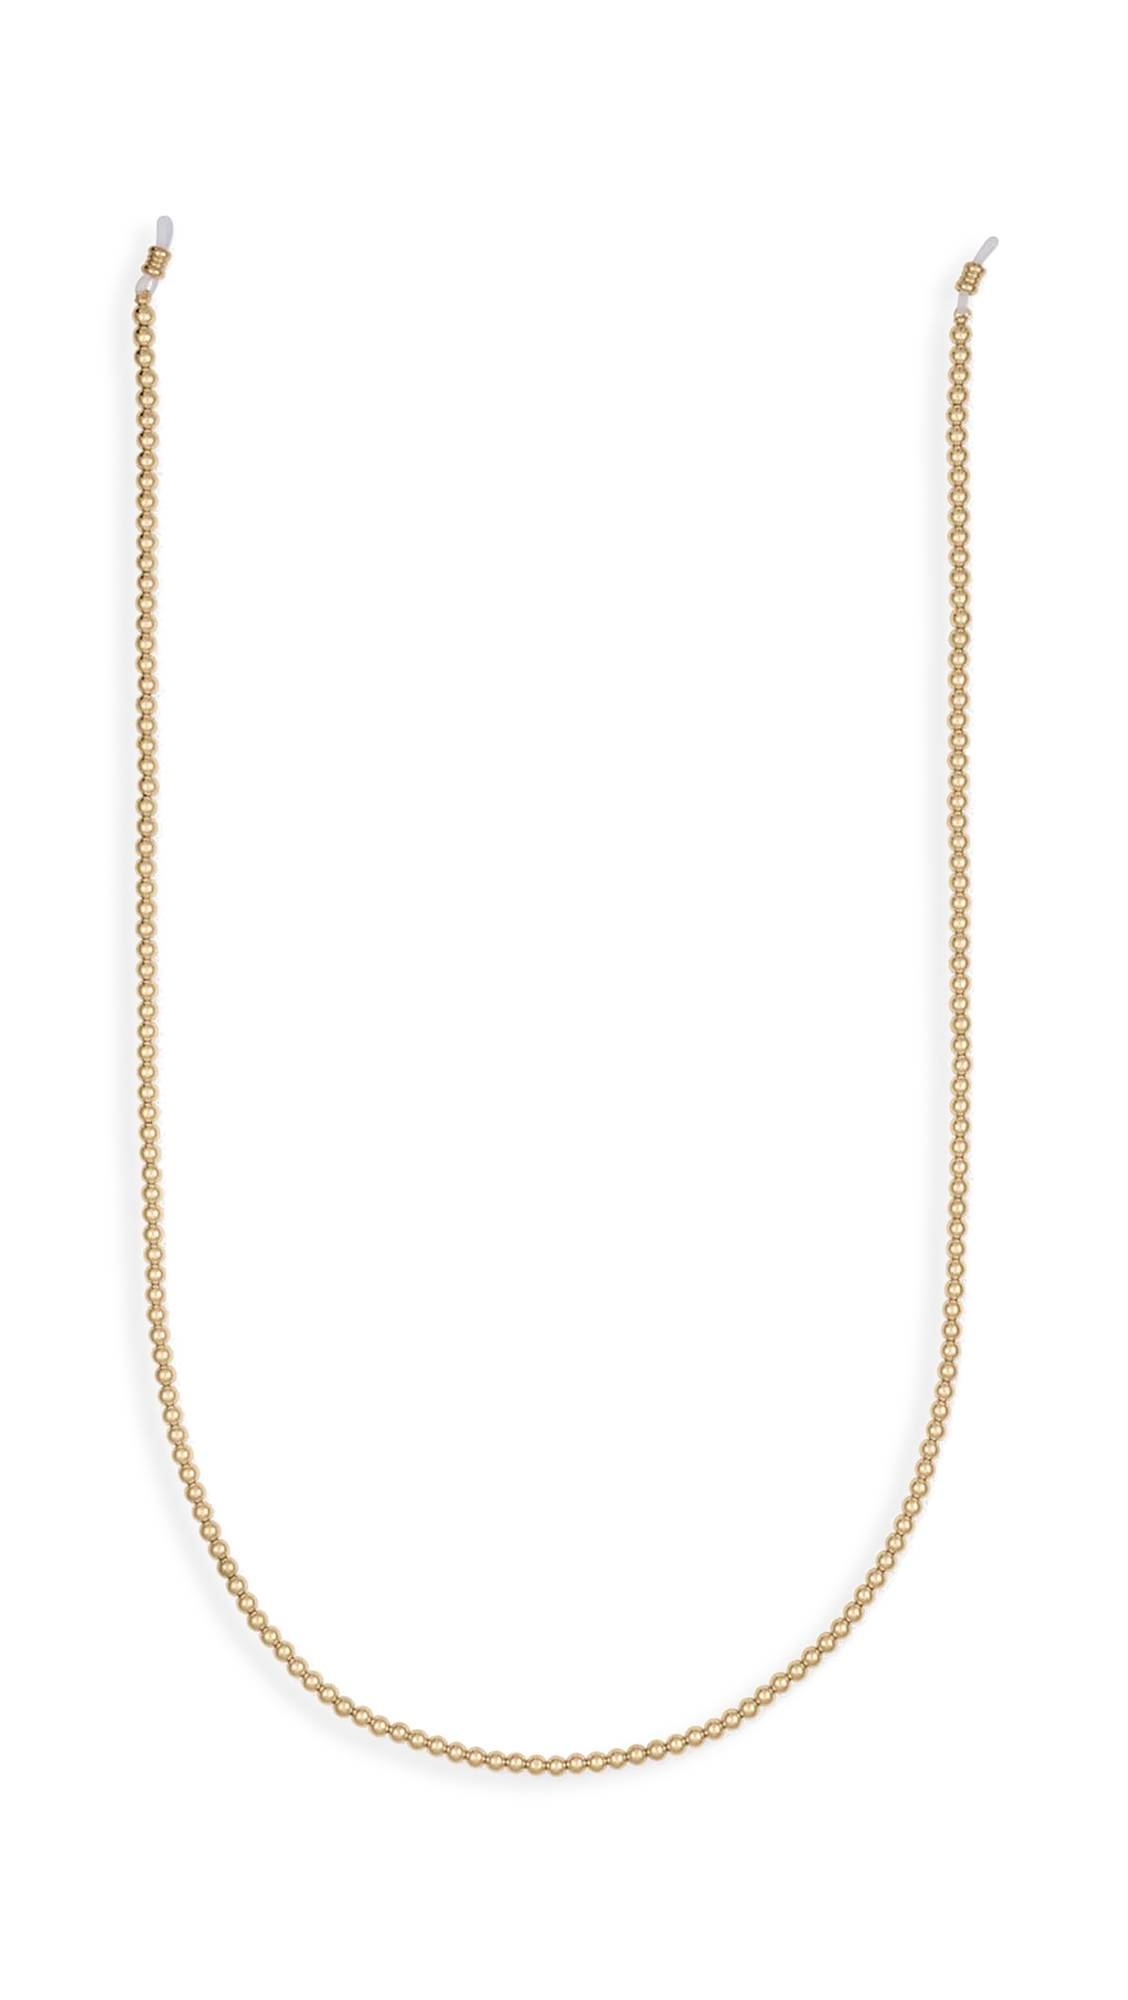 Alexa Leigh 4mm Ball Sunglass Chain  - Yellow Gold - Size: One Size